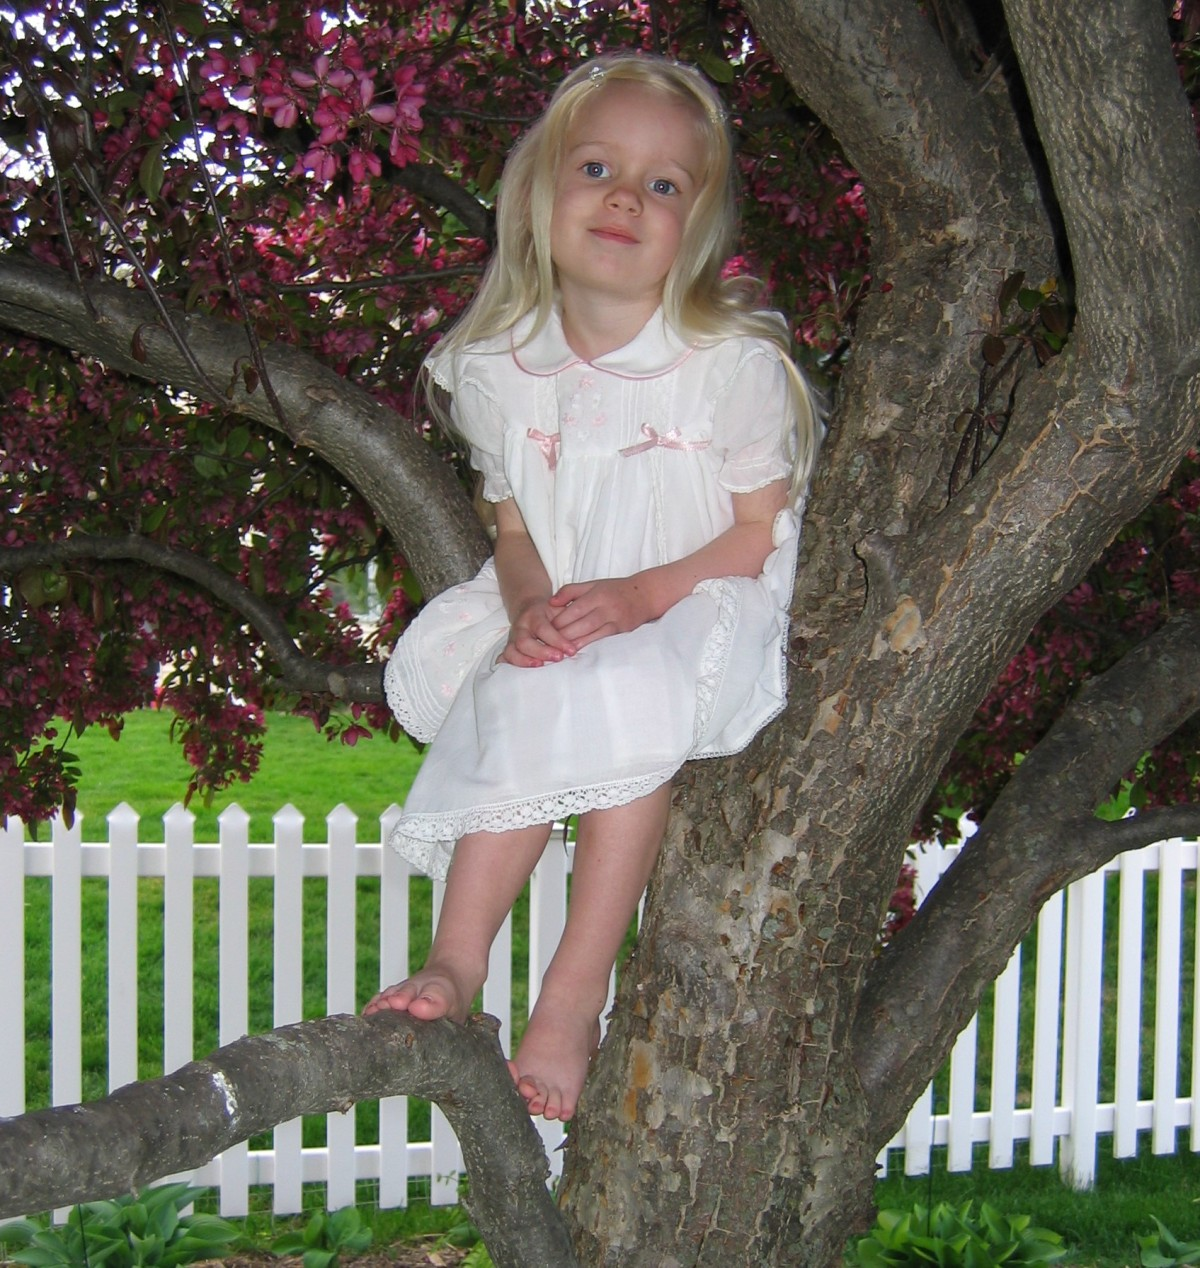 Wednesday's Wisdom – When Climbing Trees isWise